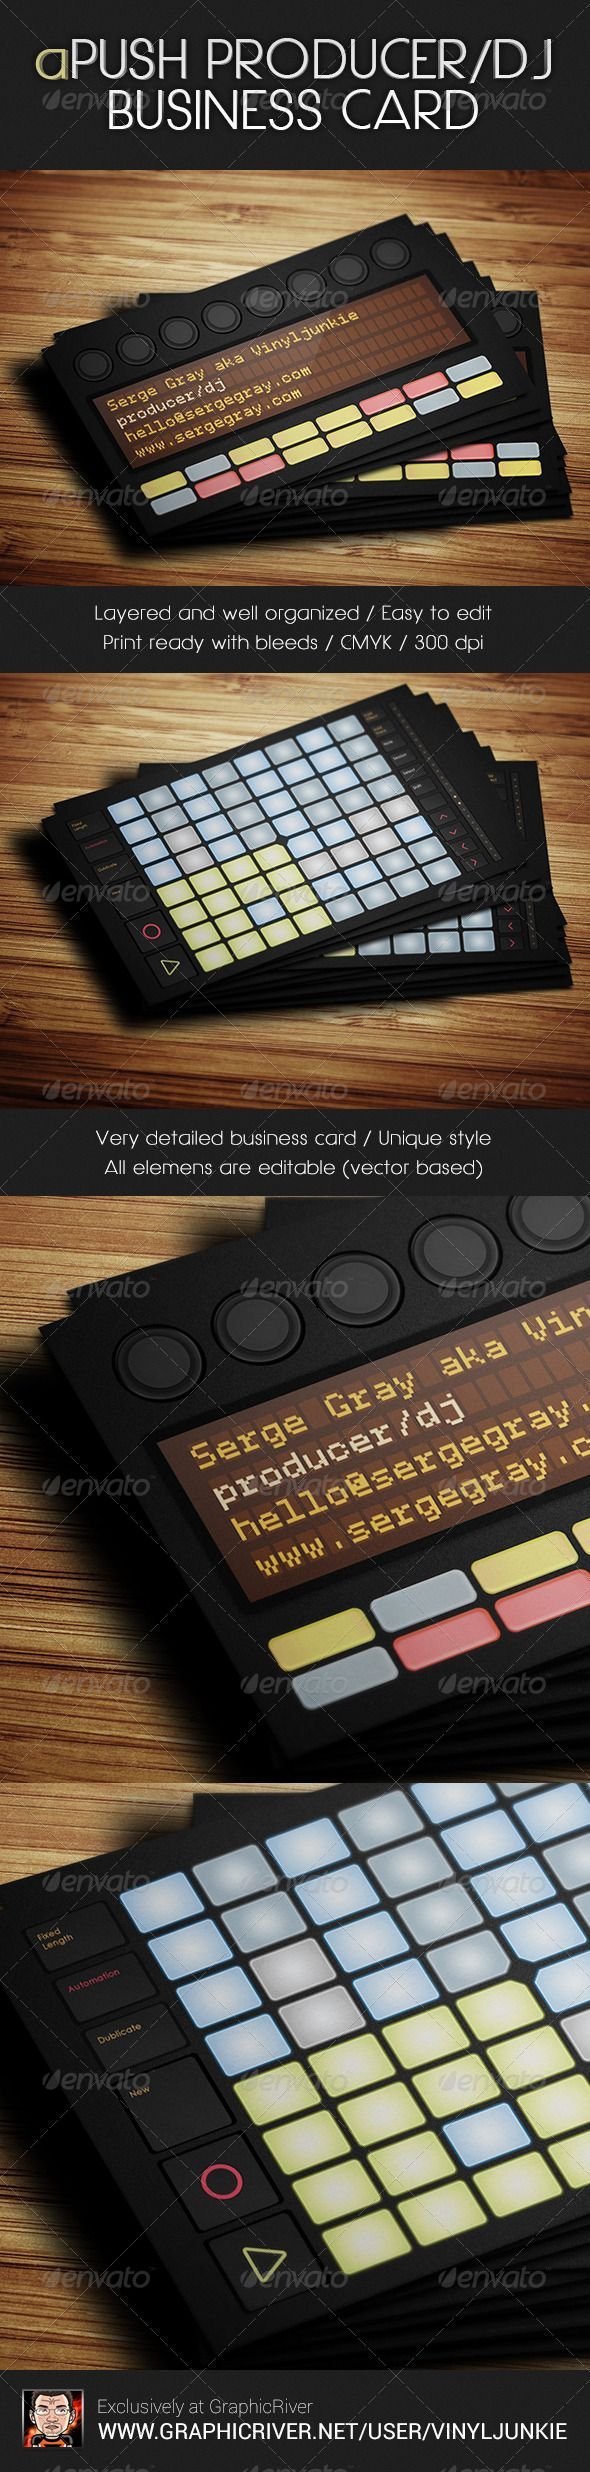 22 best creative business cards images on pinterest creative 2 side business card template for ableton push producers and djs reheart Choice Image